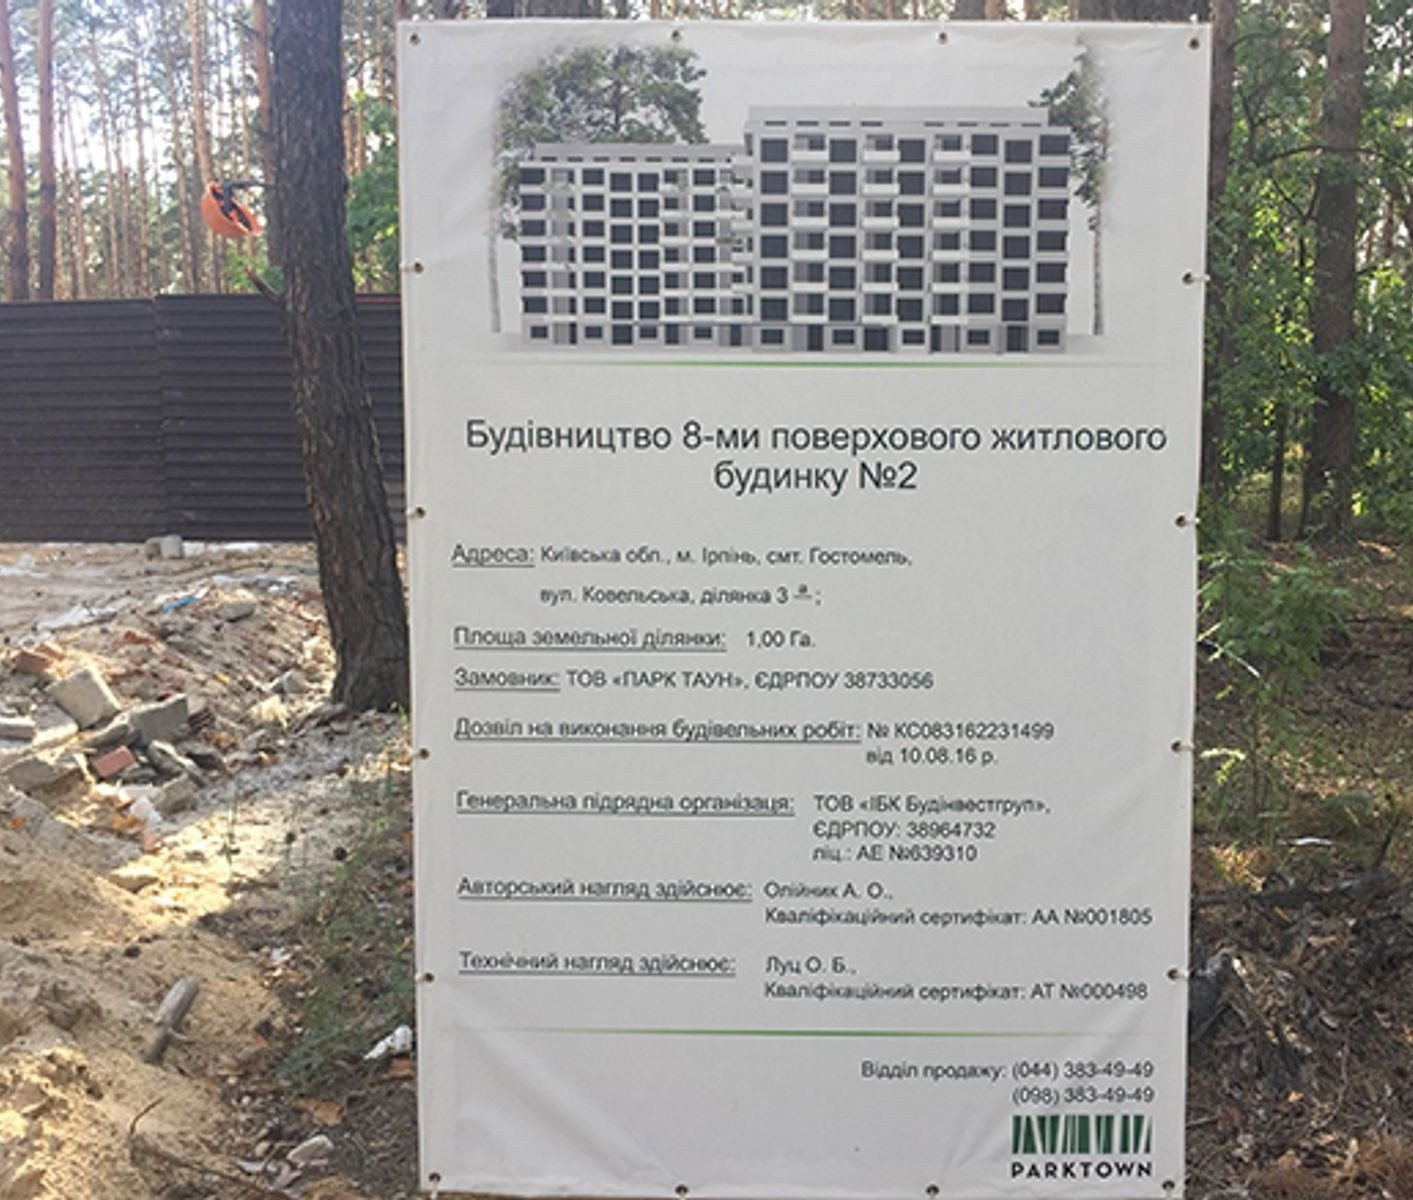 Buy an apartment in a new building New building in Gostomel on Kovelska